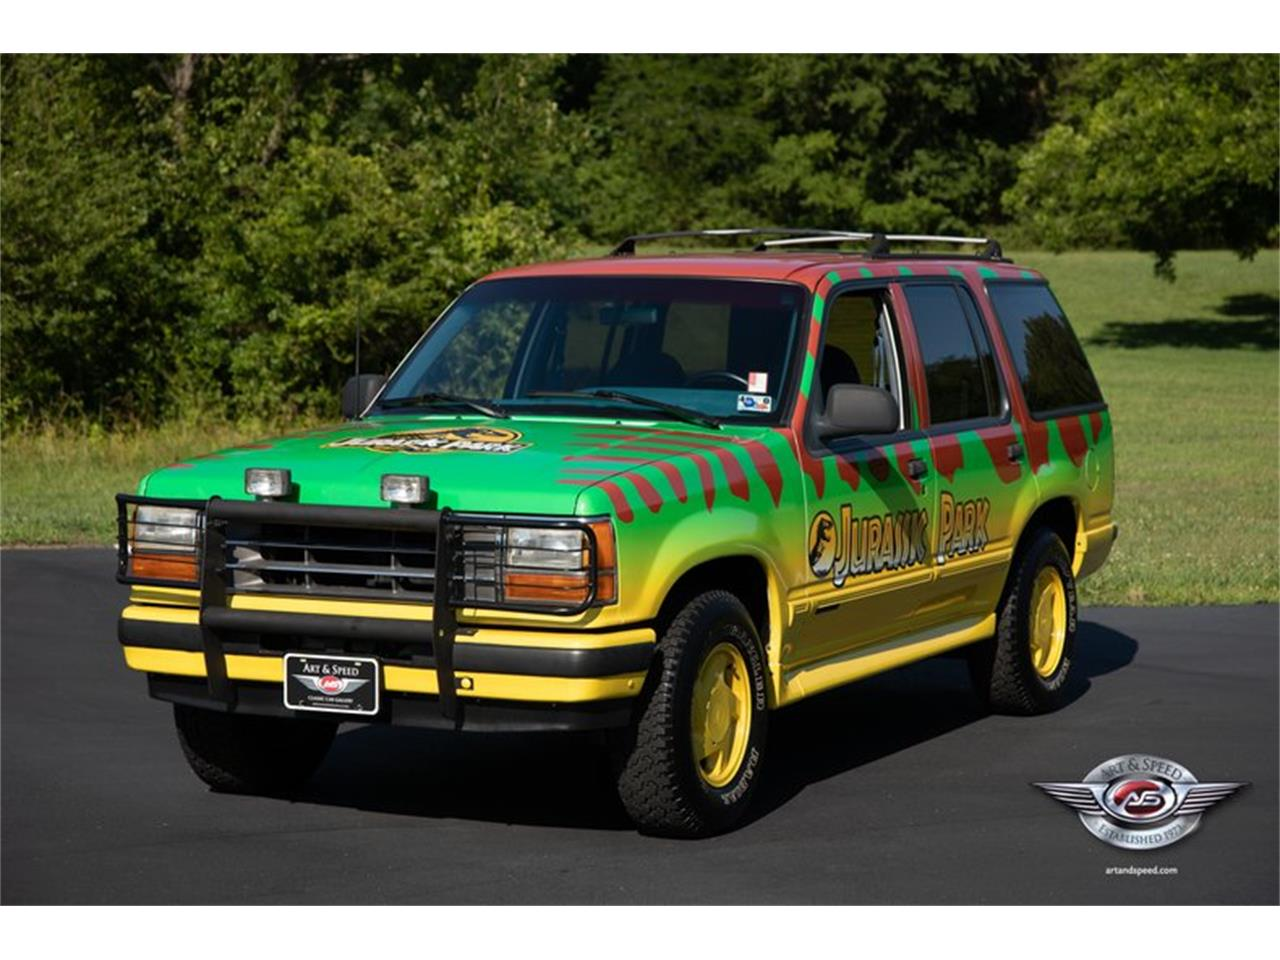 Large Picture of 1993 Ford Explorer - $8,900.00 Offered by Art & Speed - NRIV